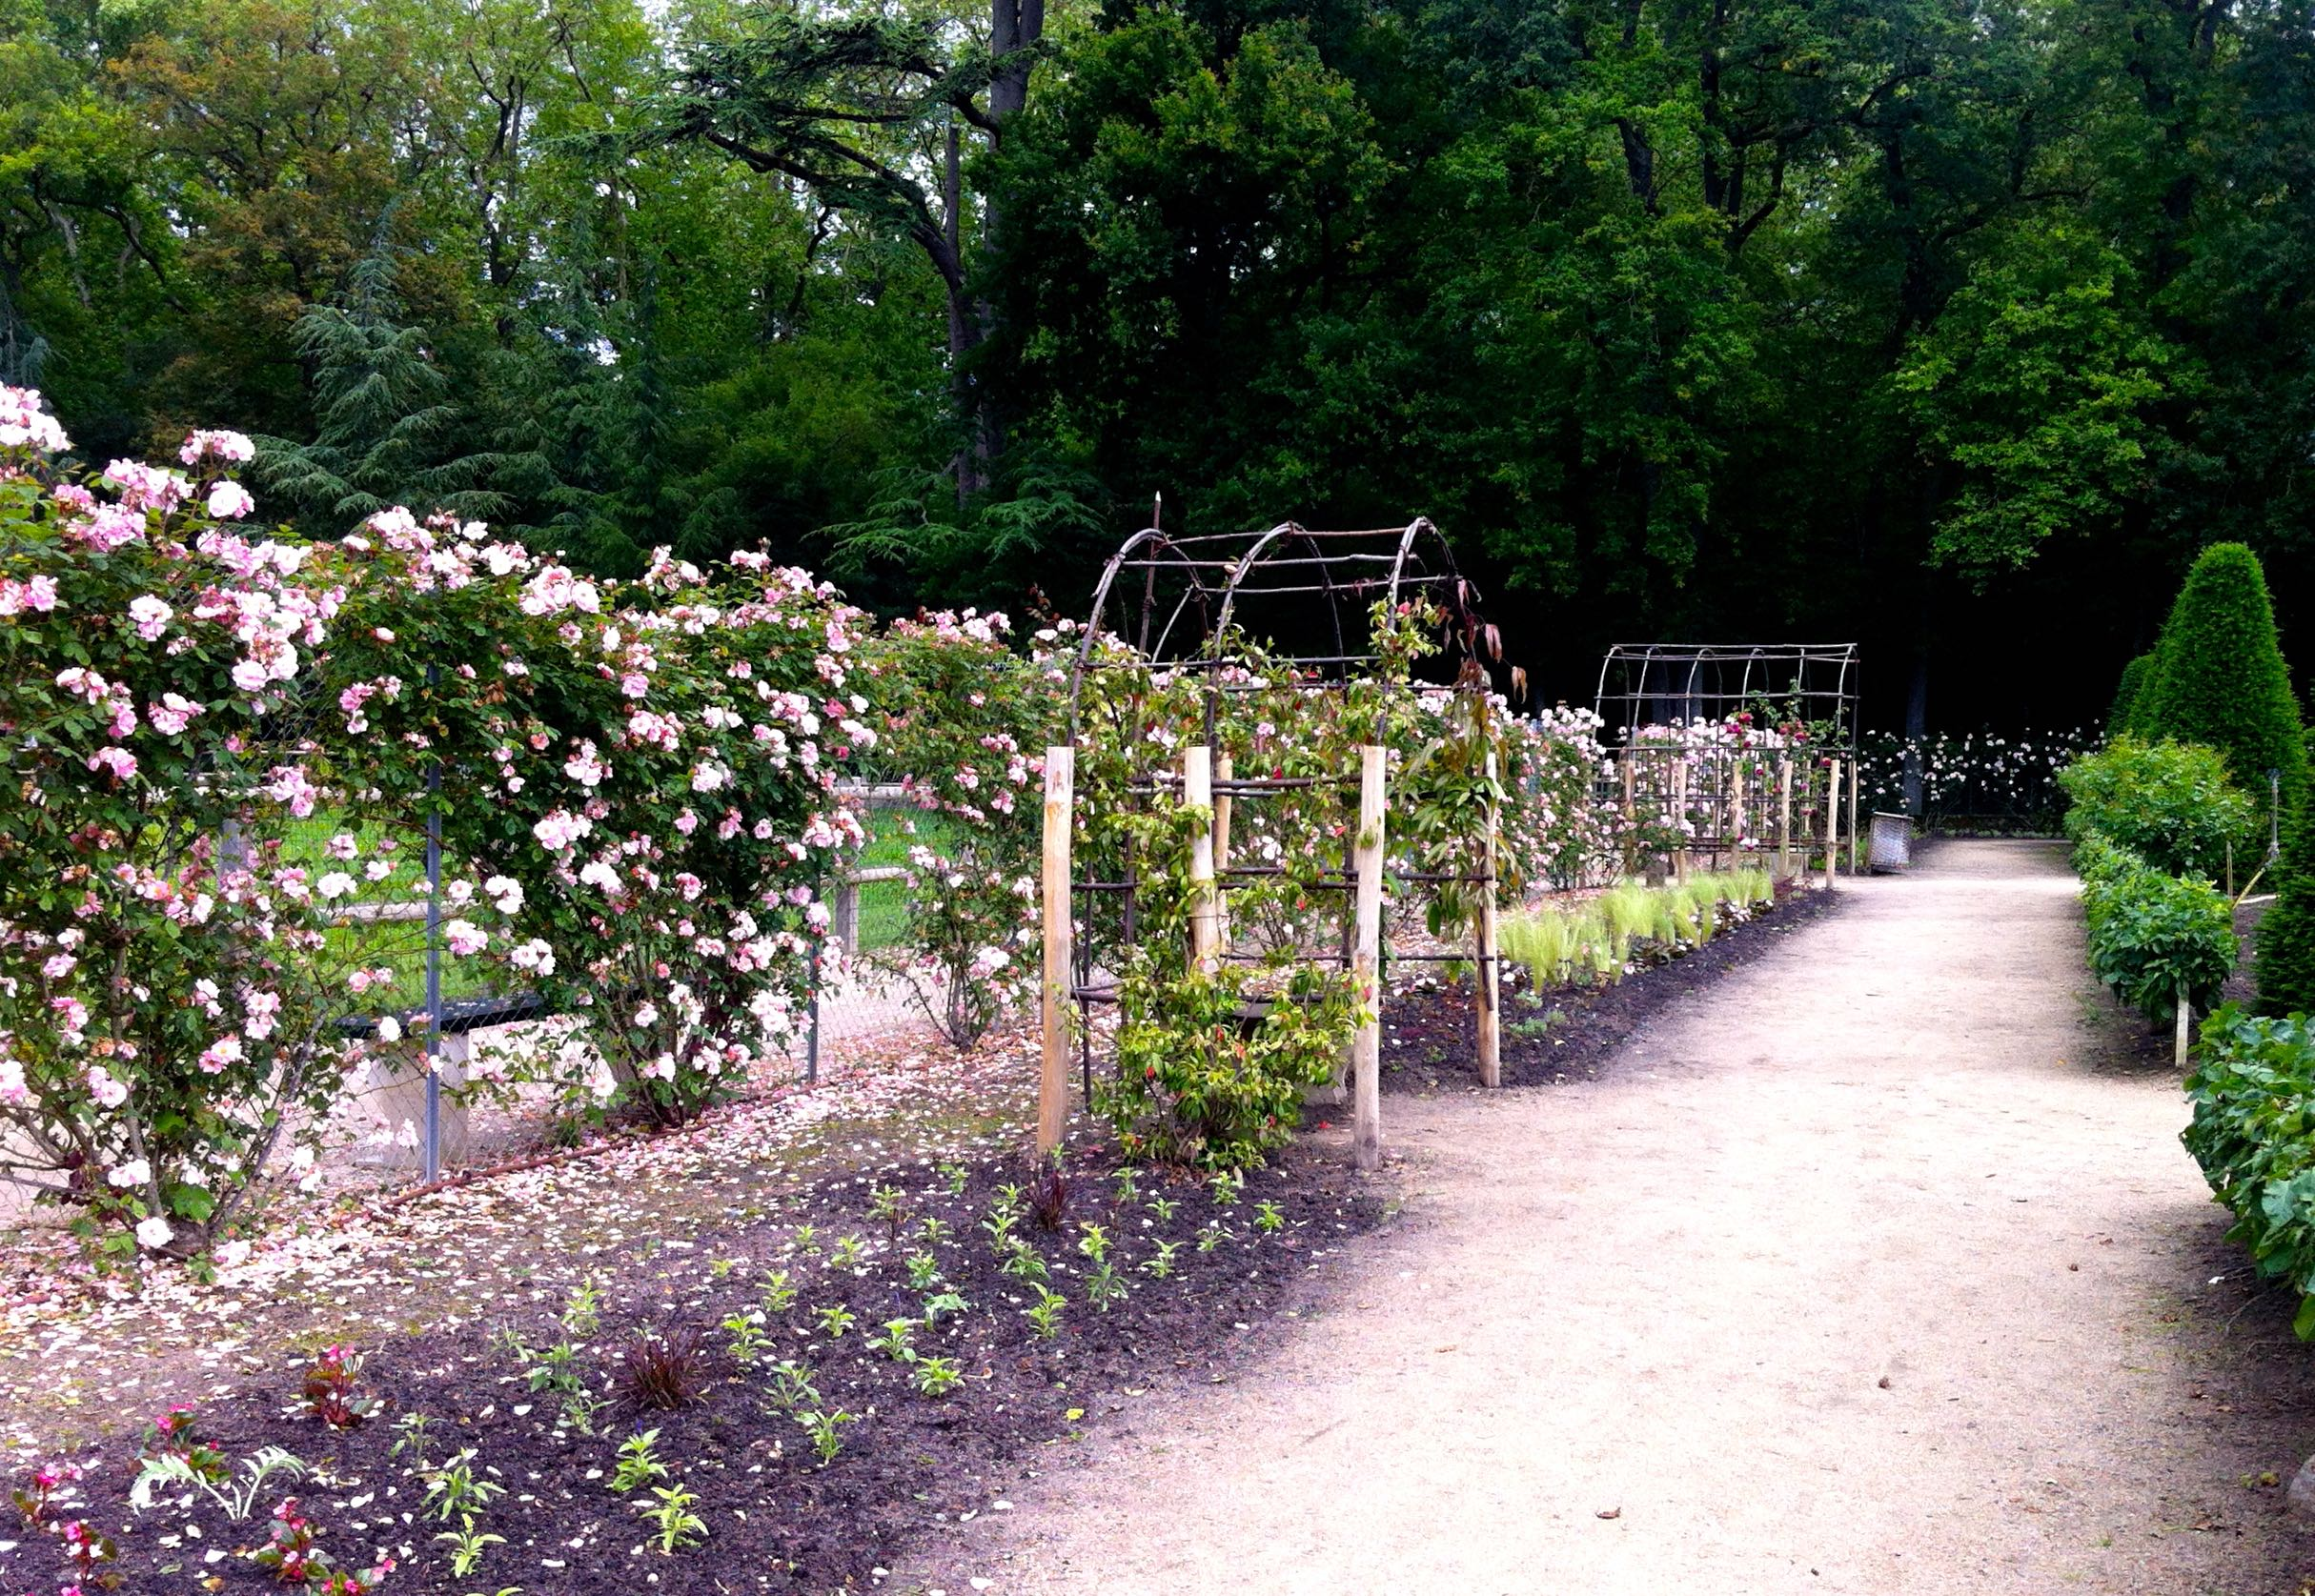 the regal roses growing in the flower garden at chateau de chenonceau